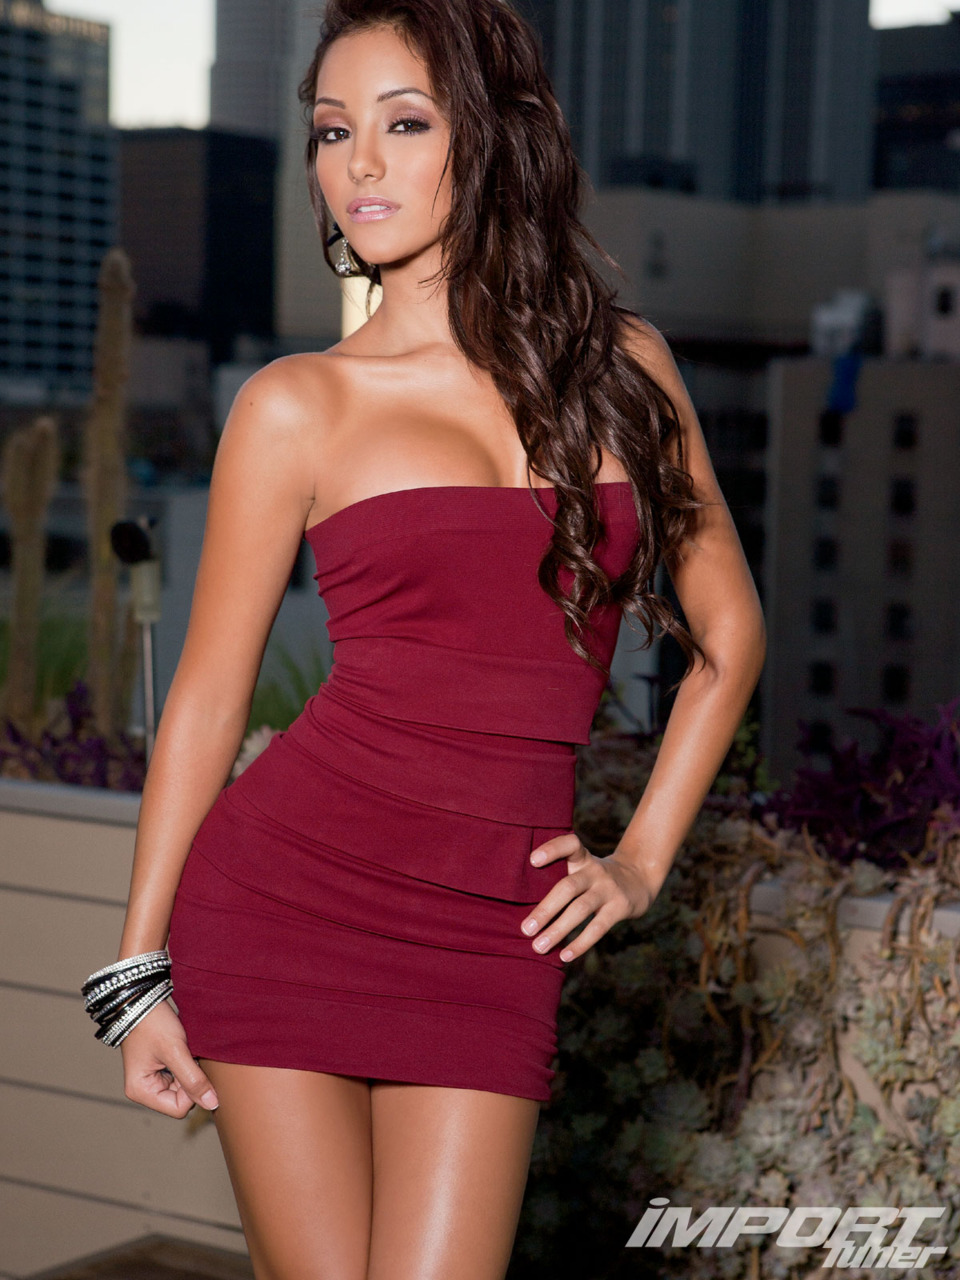 cop-top:   Melanie iglesias   She's perfect.